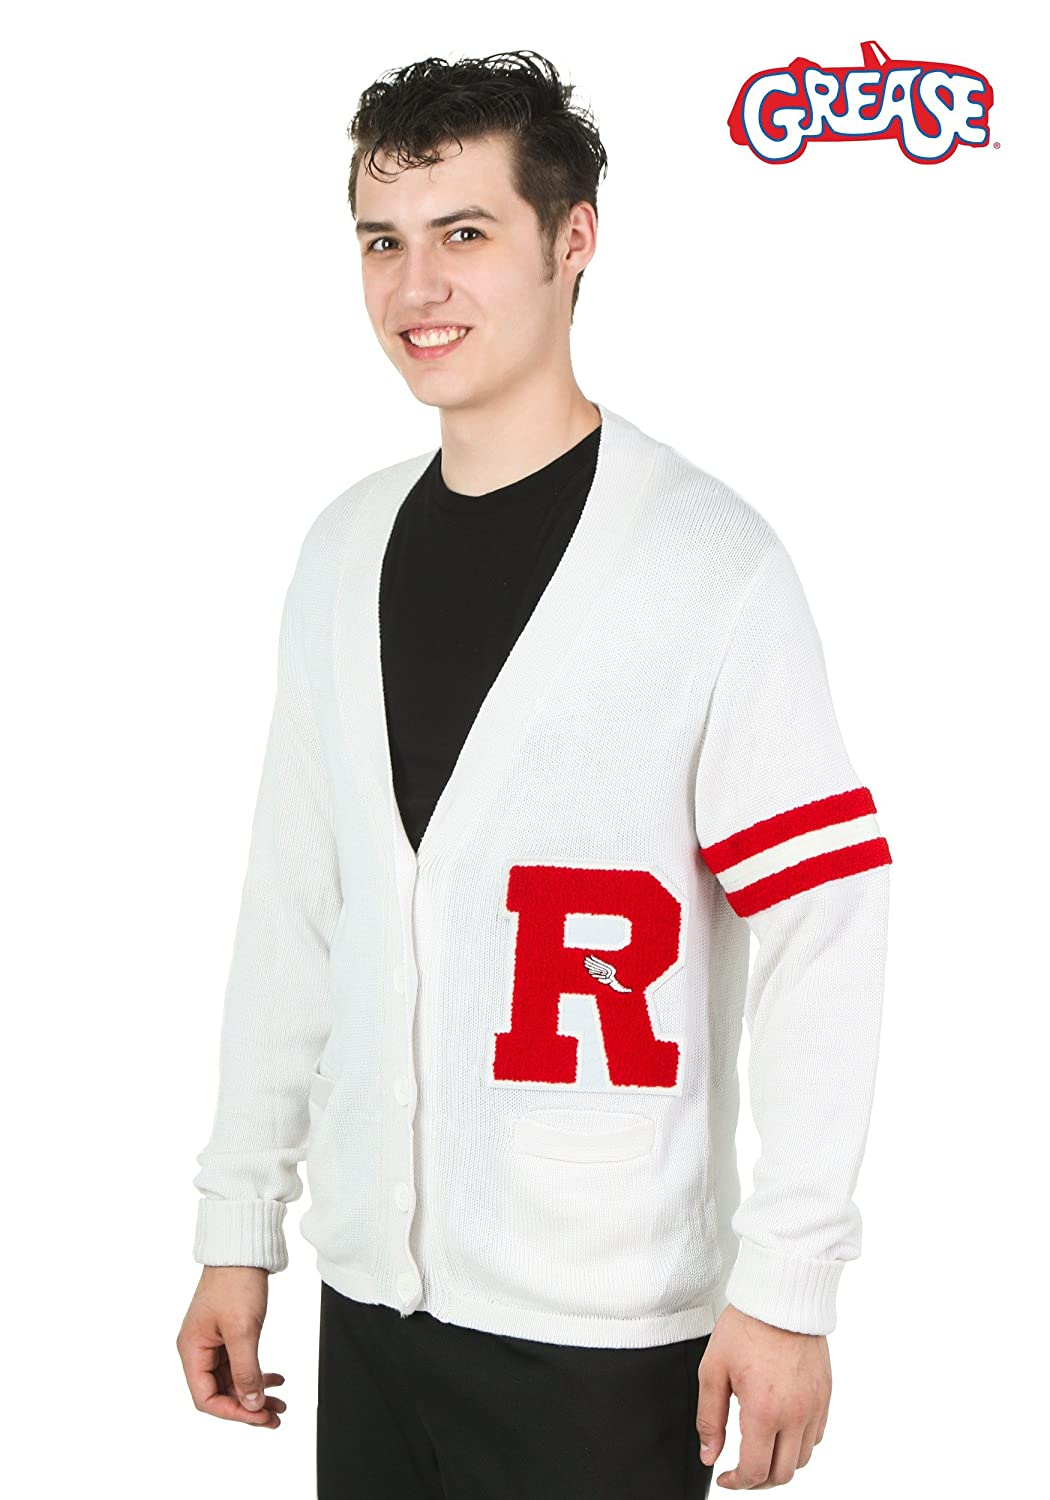 Men's Vintage Style Sweaters – 1920s to 1960s Fun Costumes mens Grease Rydell High Mens Sweater $49.99 AT vintagedancer.com